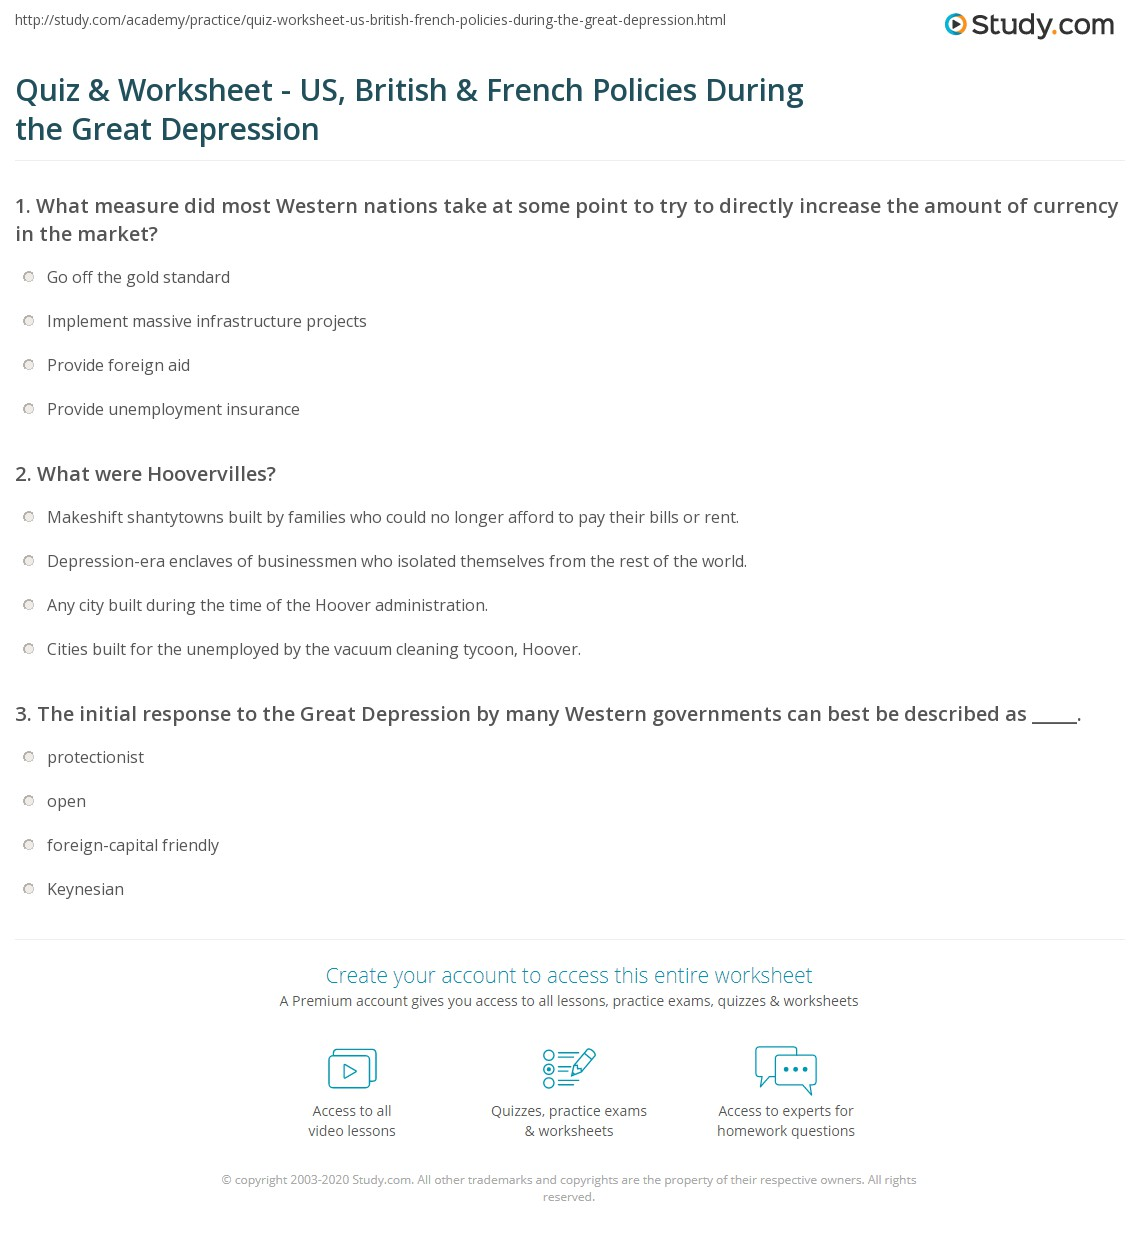 Free Worksheet Great Depression Worksheets quiz worksheet us british french policies during the great print response to depression governmental in britain france worksheet